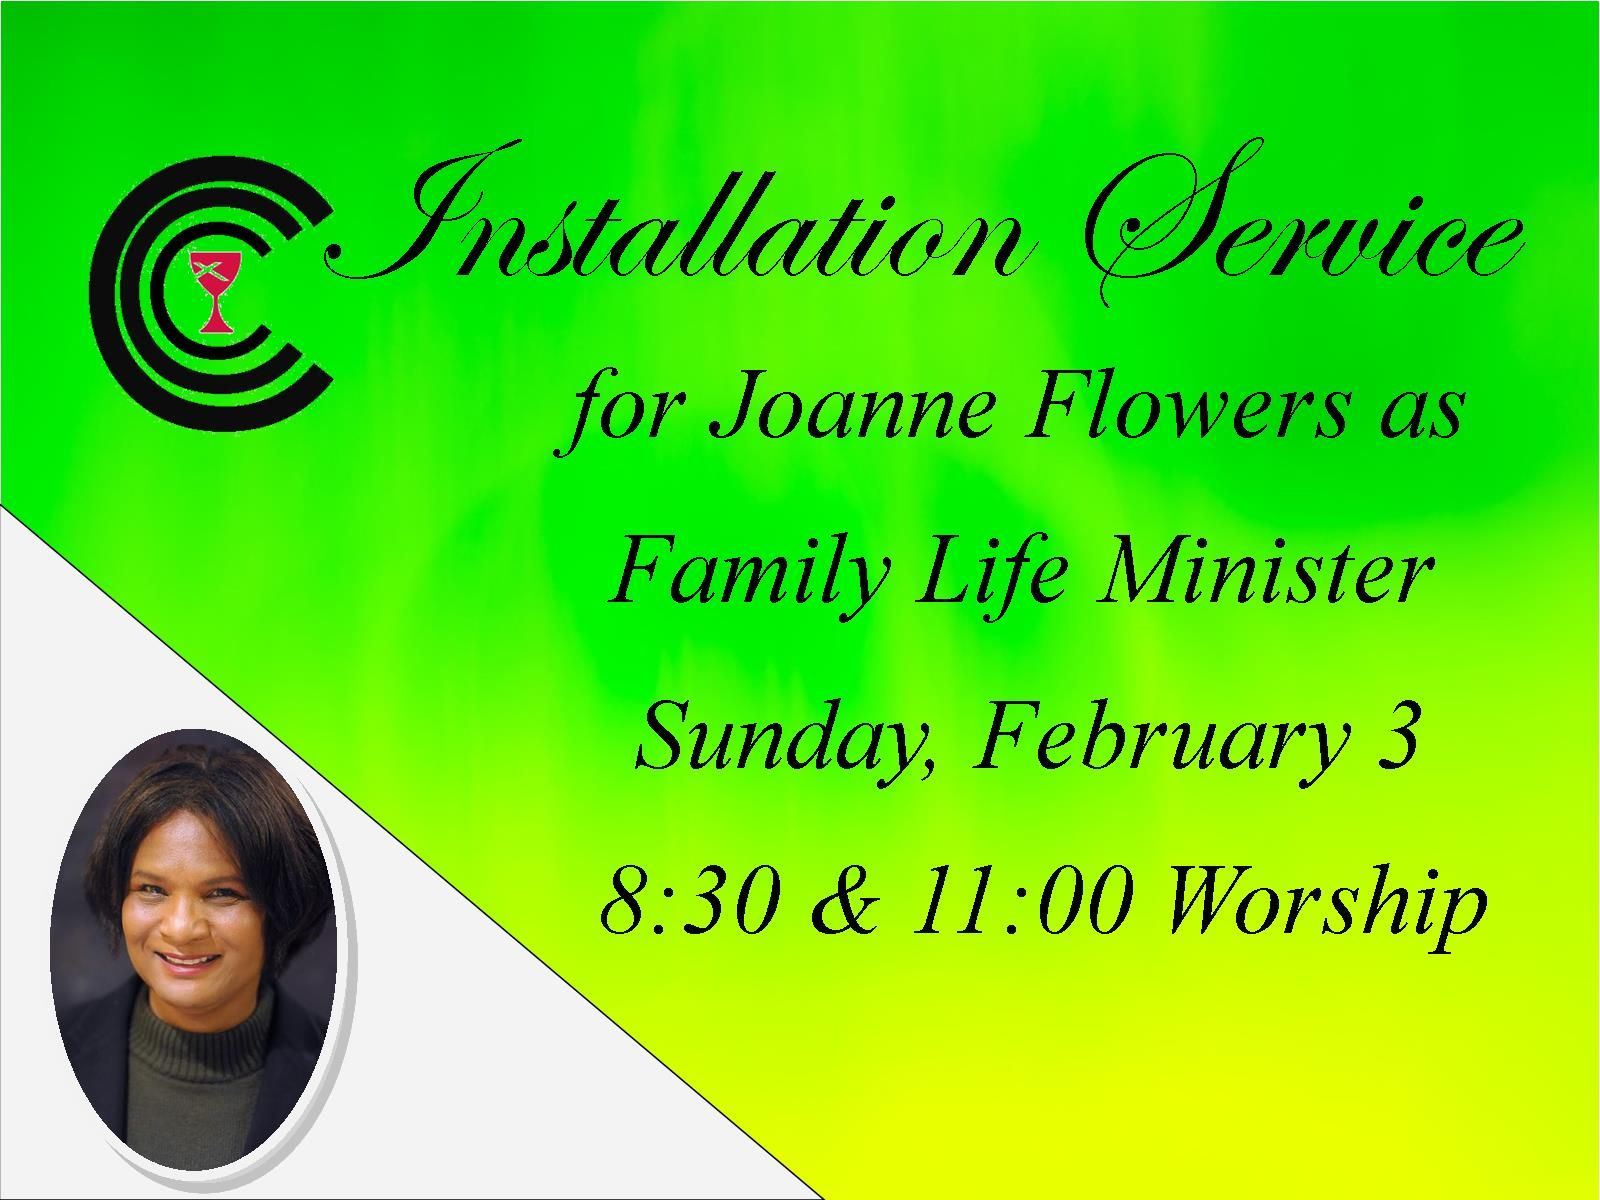 Installation Service for Joanne